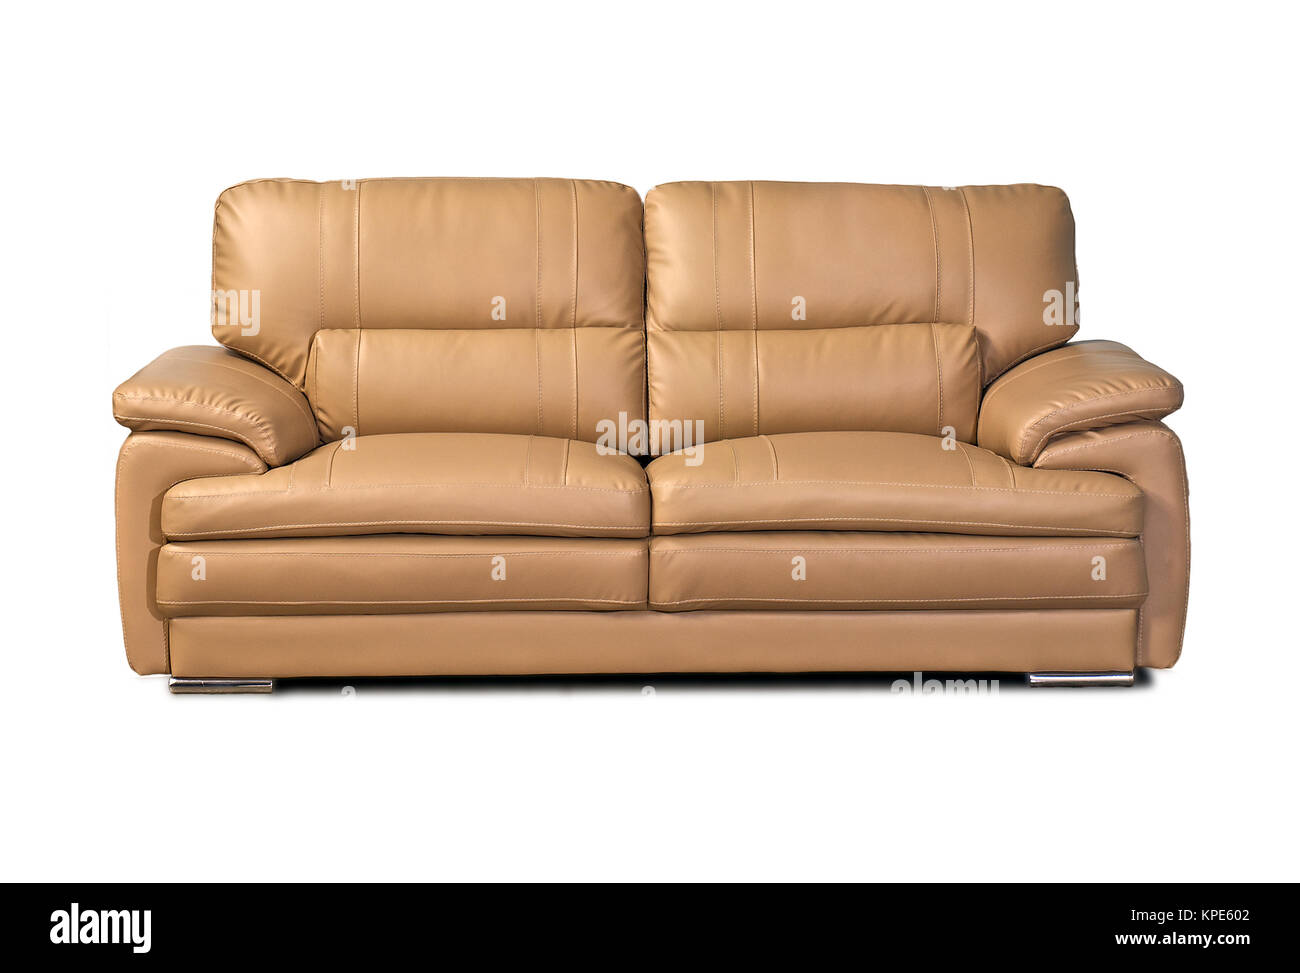 Light Brown Leather Sofa On White Background Stock Photo 168727778